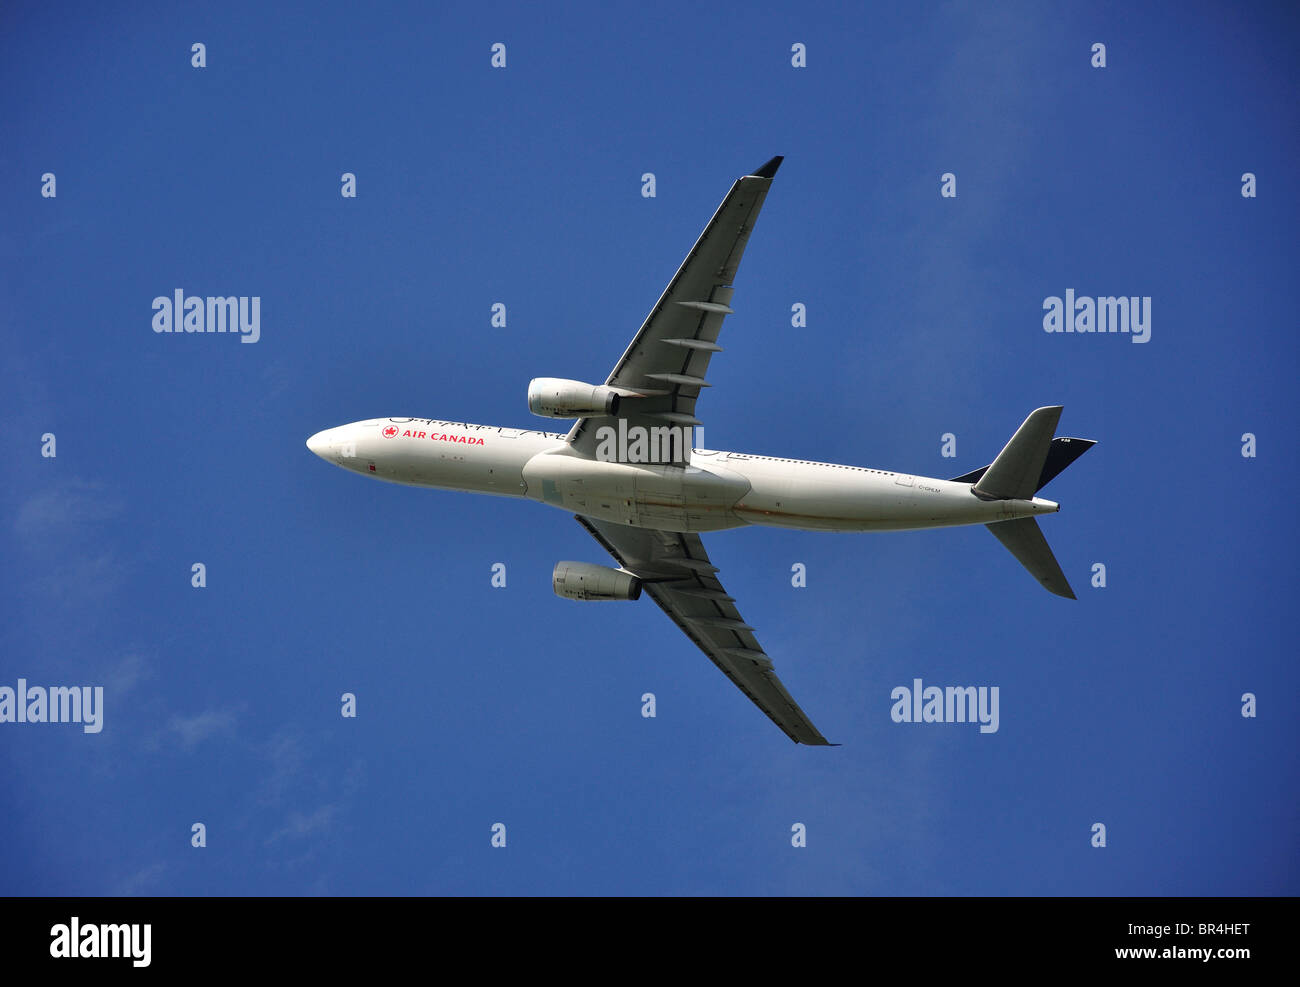 Air Canada Airbus A330-300 aircraft taking off, Heathrow Airport, Greater London, England, United Kingdom - Stock Image